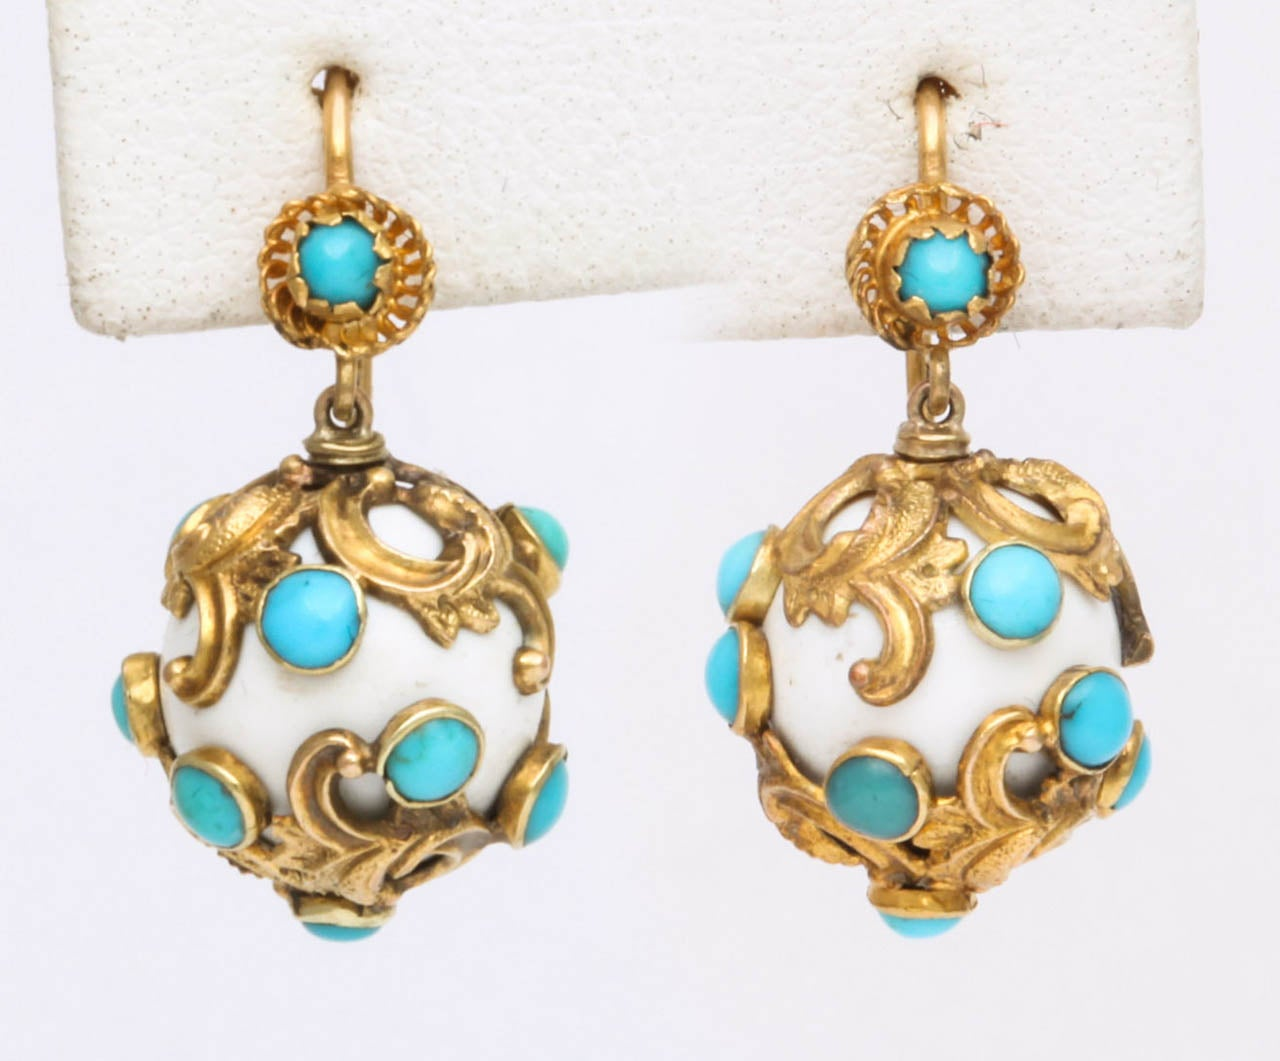 Fun and easily wearable, this pair of Victorian earrings is made with dangling orbs of white enamel wrapped in golden vines. The vines terminate in turquoise floral buds. At the earlobe is a  small flower also centered by a turquoise. Light in color